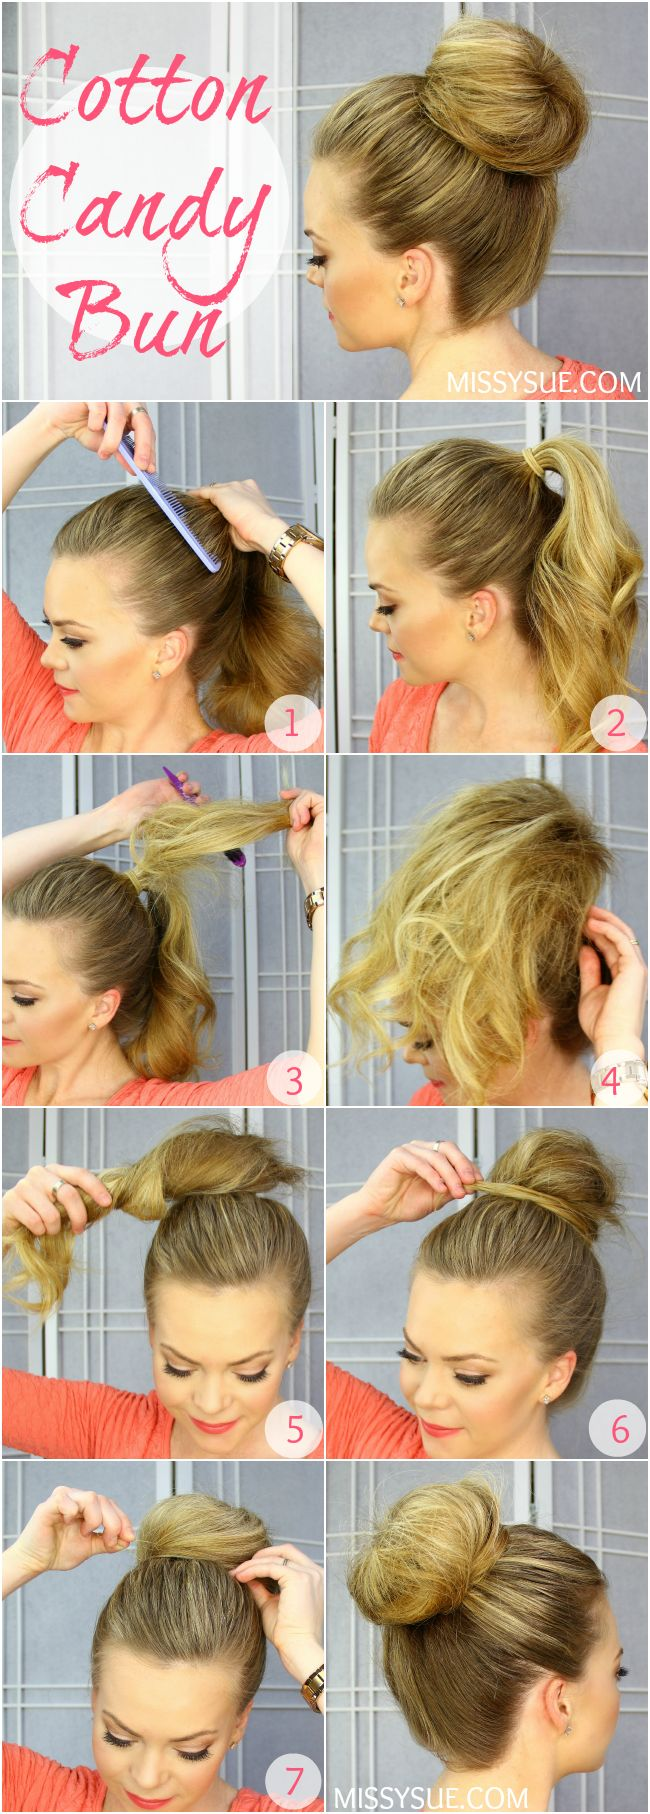 Cotton Candy Bun